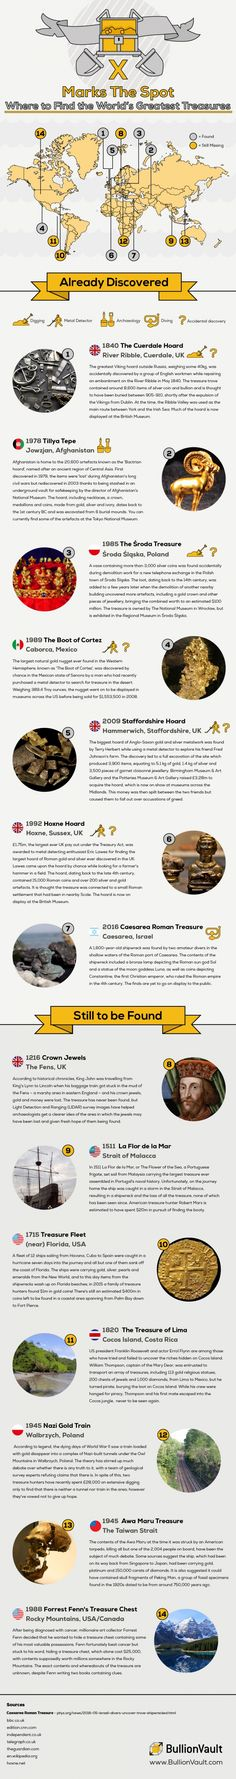 Marks The Spot: Where to Find the World's Greatest Treasures #Infographics